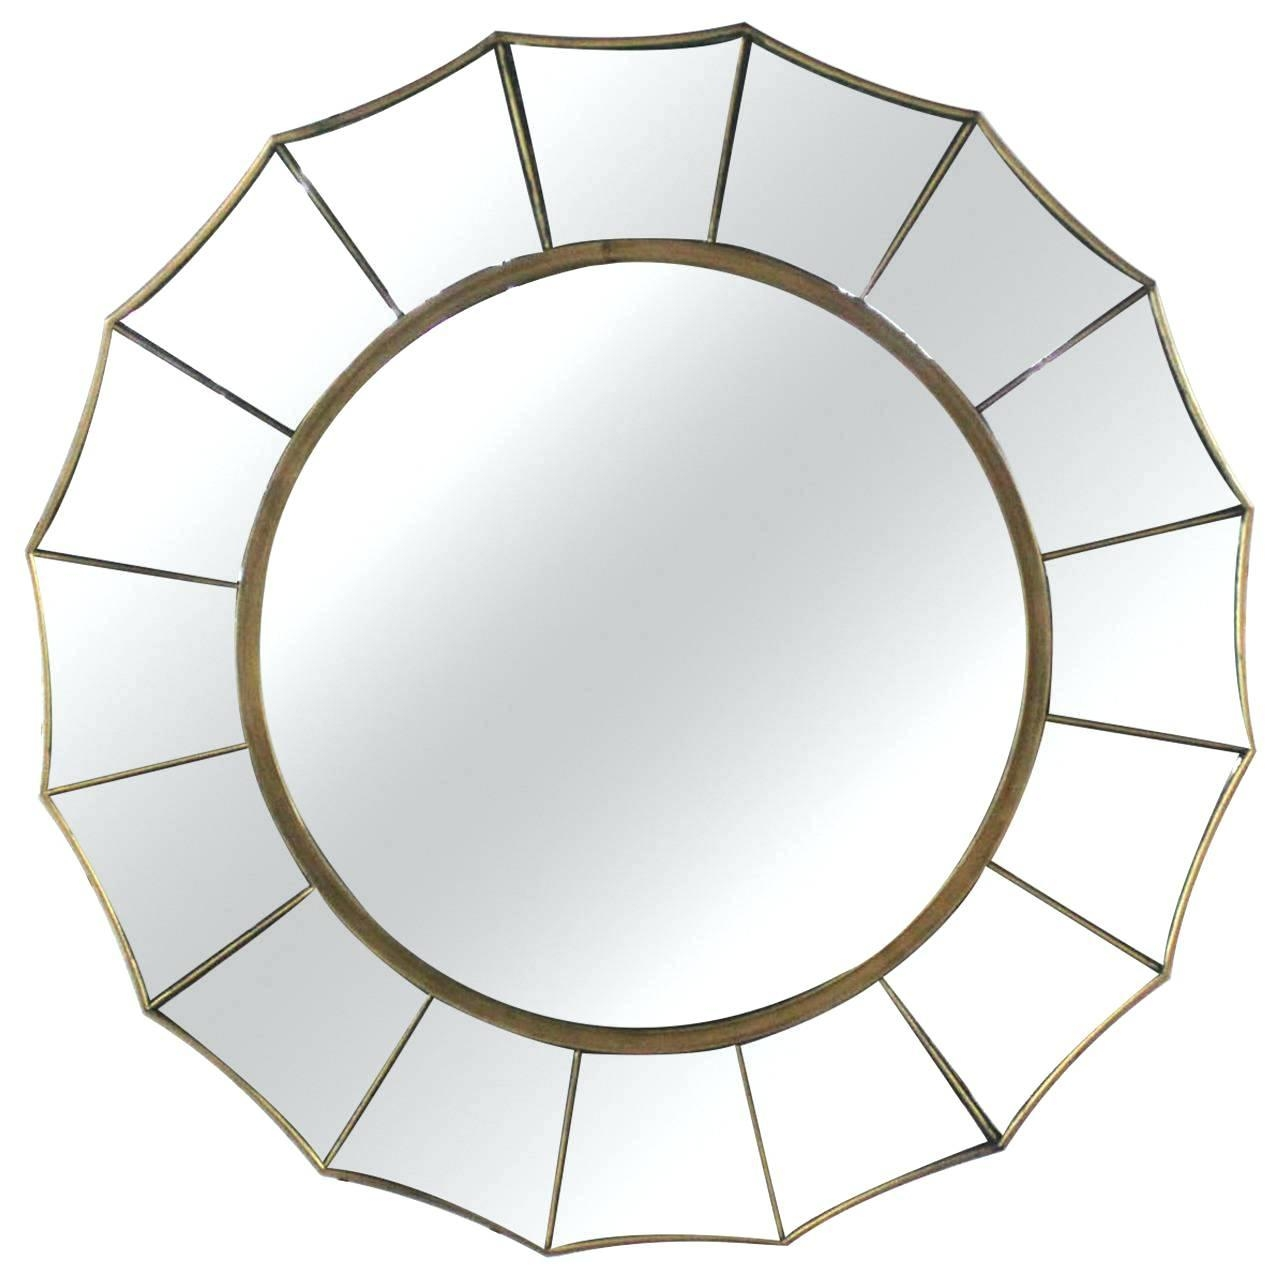 Wall Ideas : Unusual Wall Mirrors Wall Decorative Mirror With Regard To Modern Mirror Wall Art (View 20 of 20)